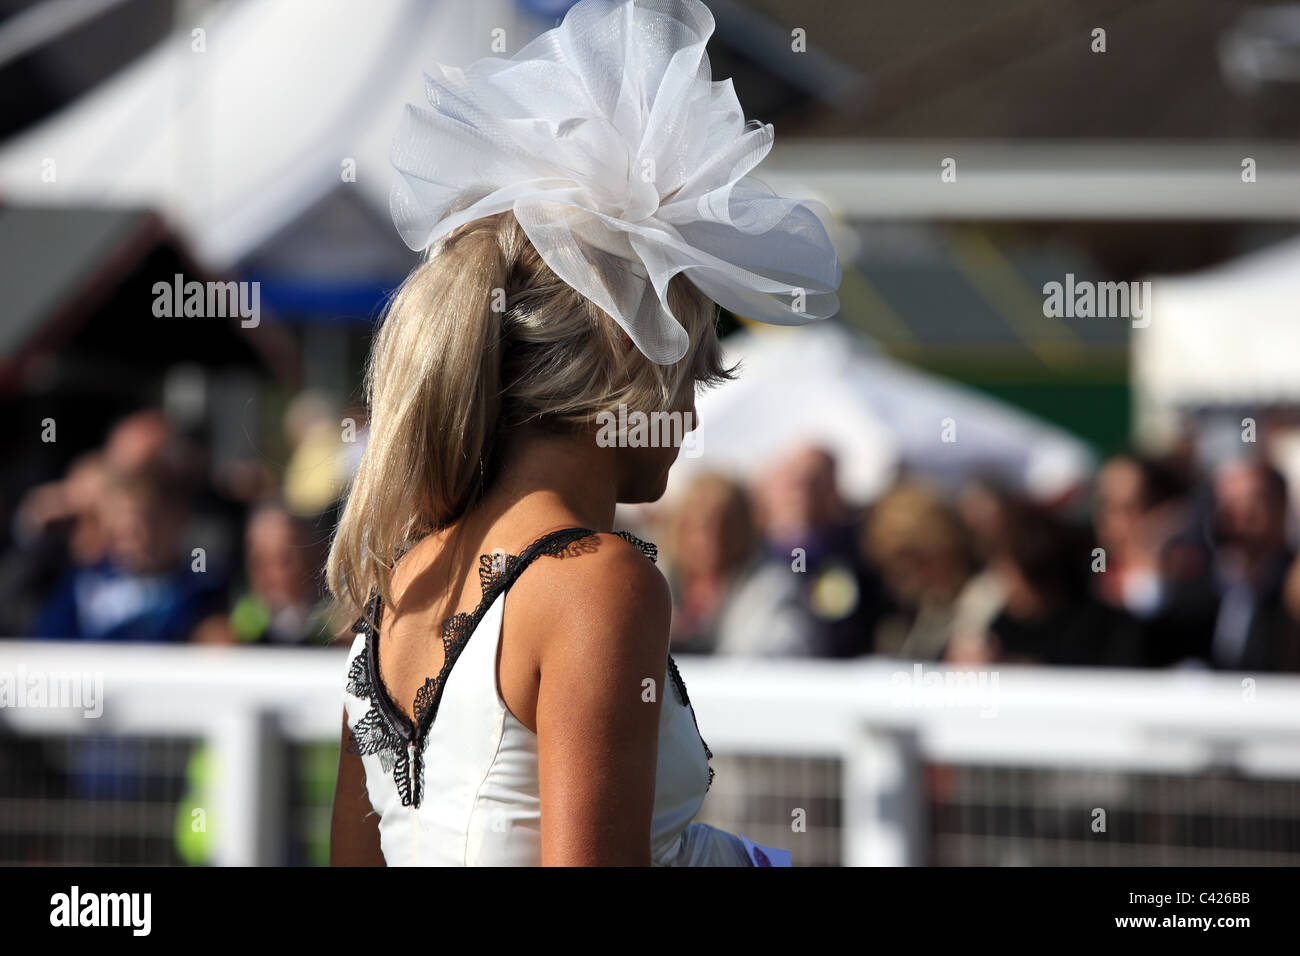 Ladies day at the races - Stock Image